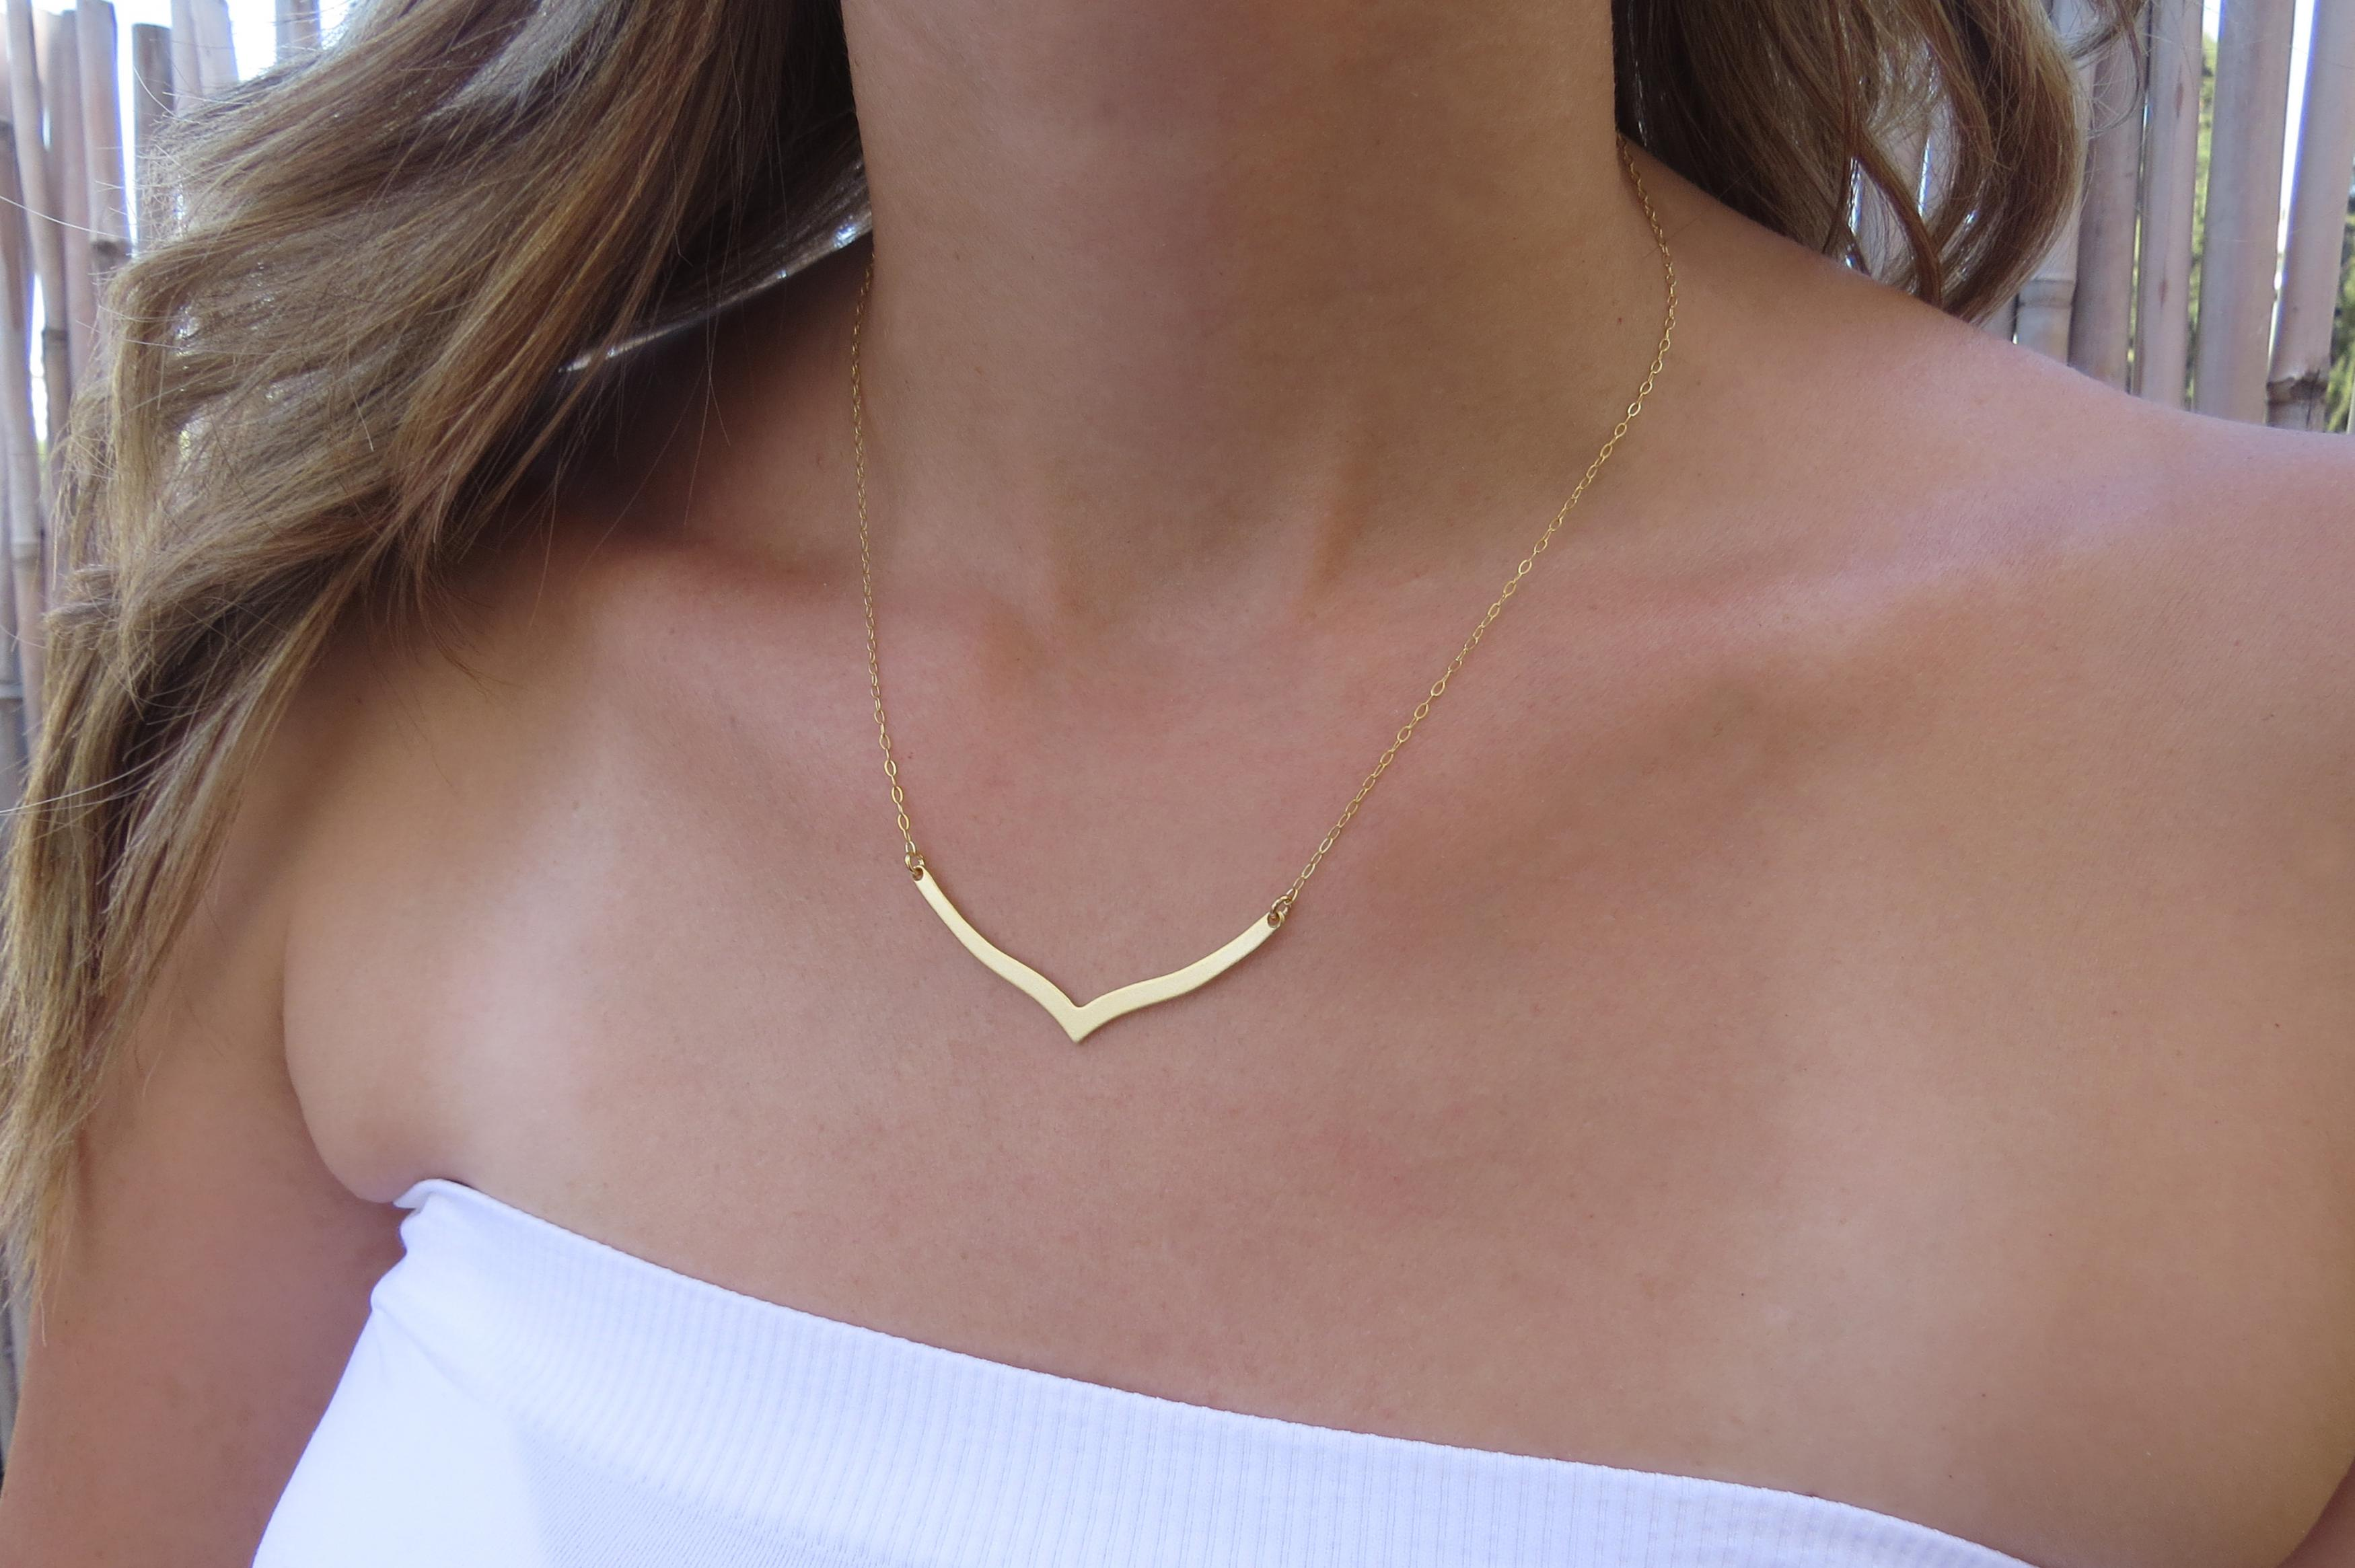 necklaces jewellery jewelry for geometric product fashion simple necklace chevron original unique her gold gift